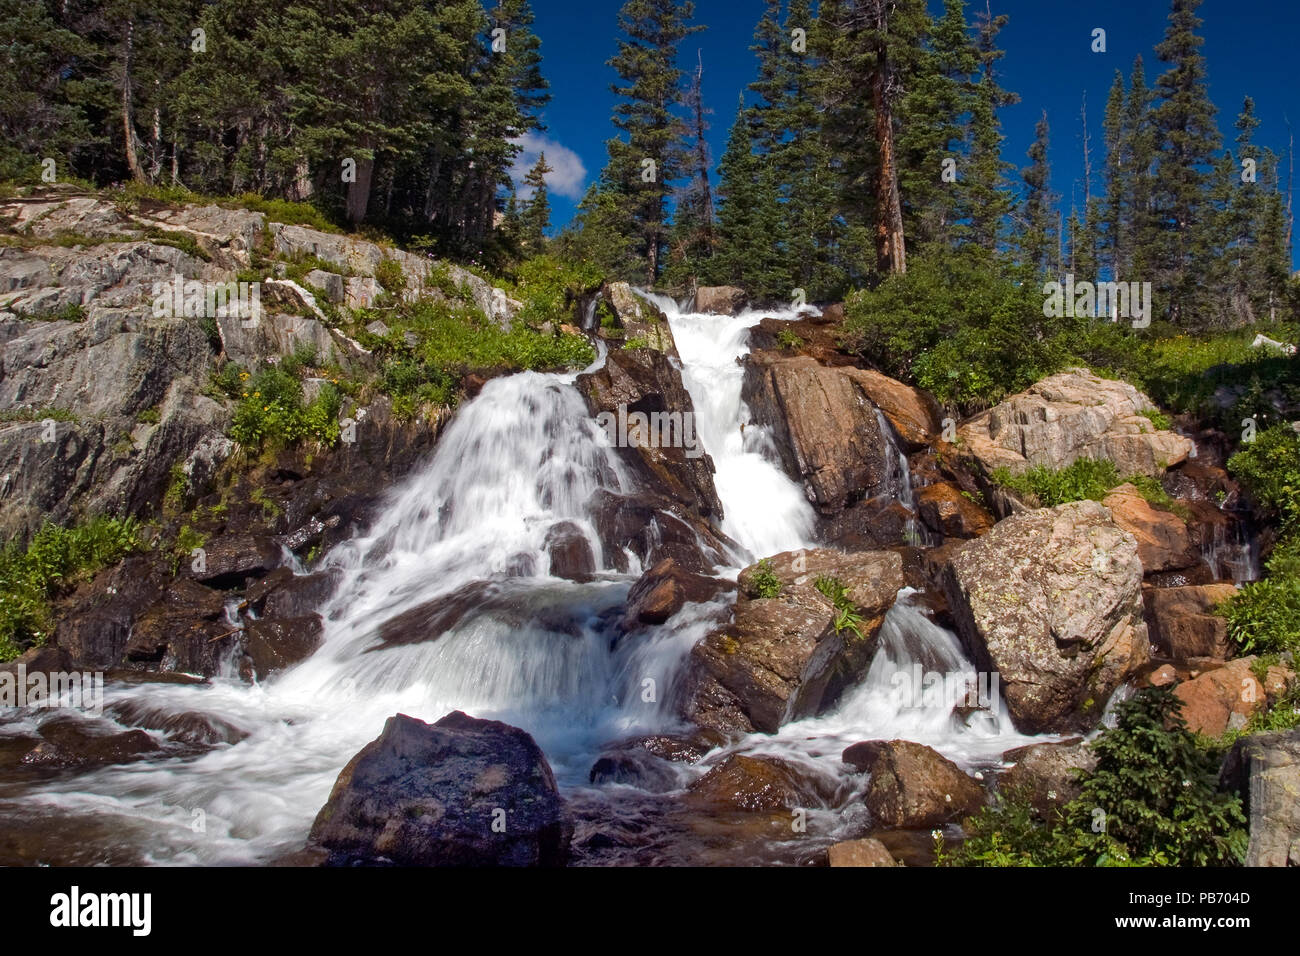 Waterfall along the Trail in the Arapaho National Forest - Stock Image